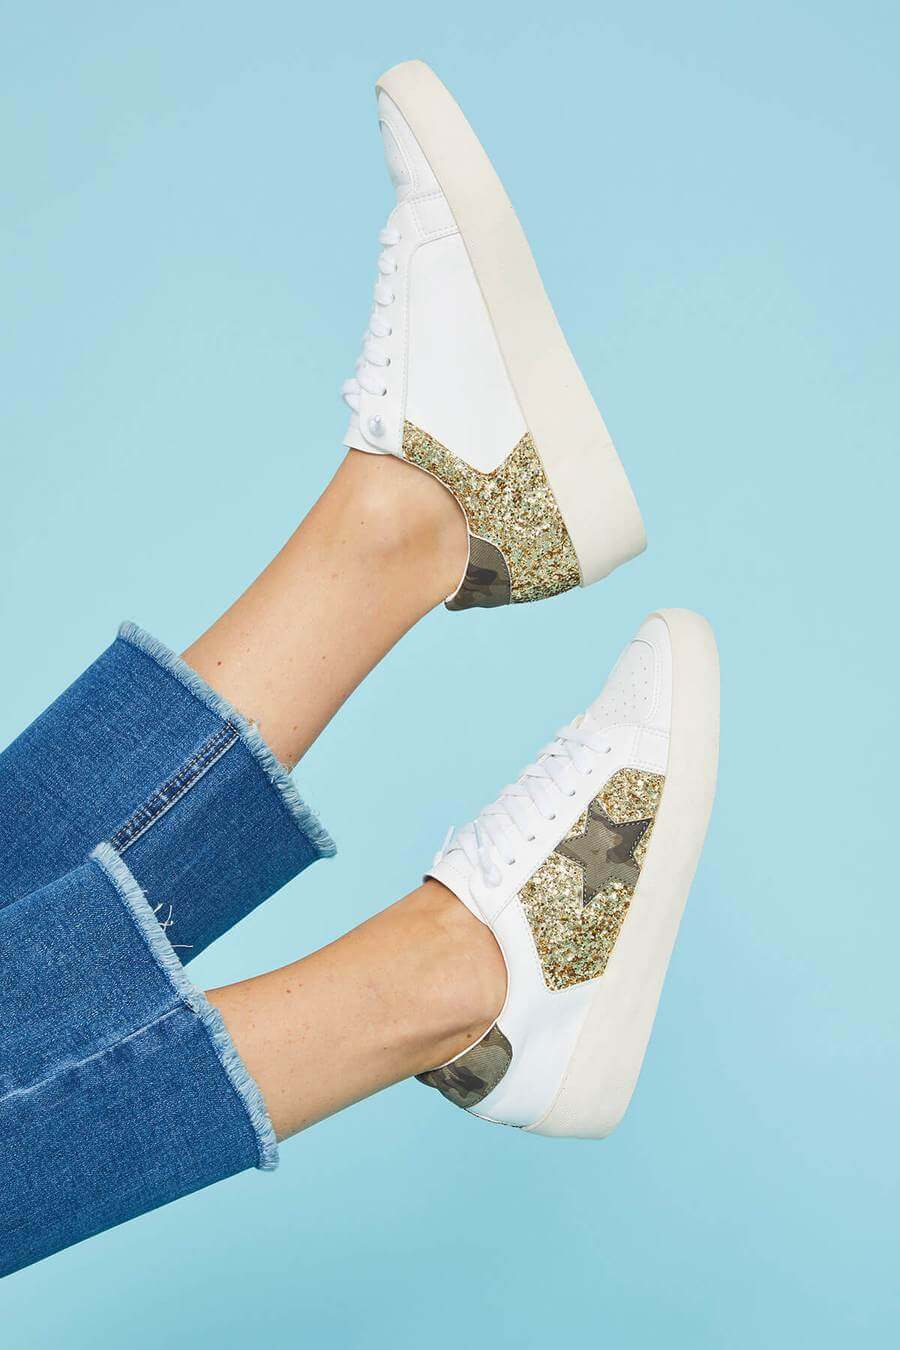 ST Olga Golden Girls Camo Star Wedge Lowtop Sneakers Review